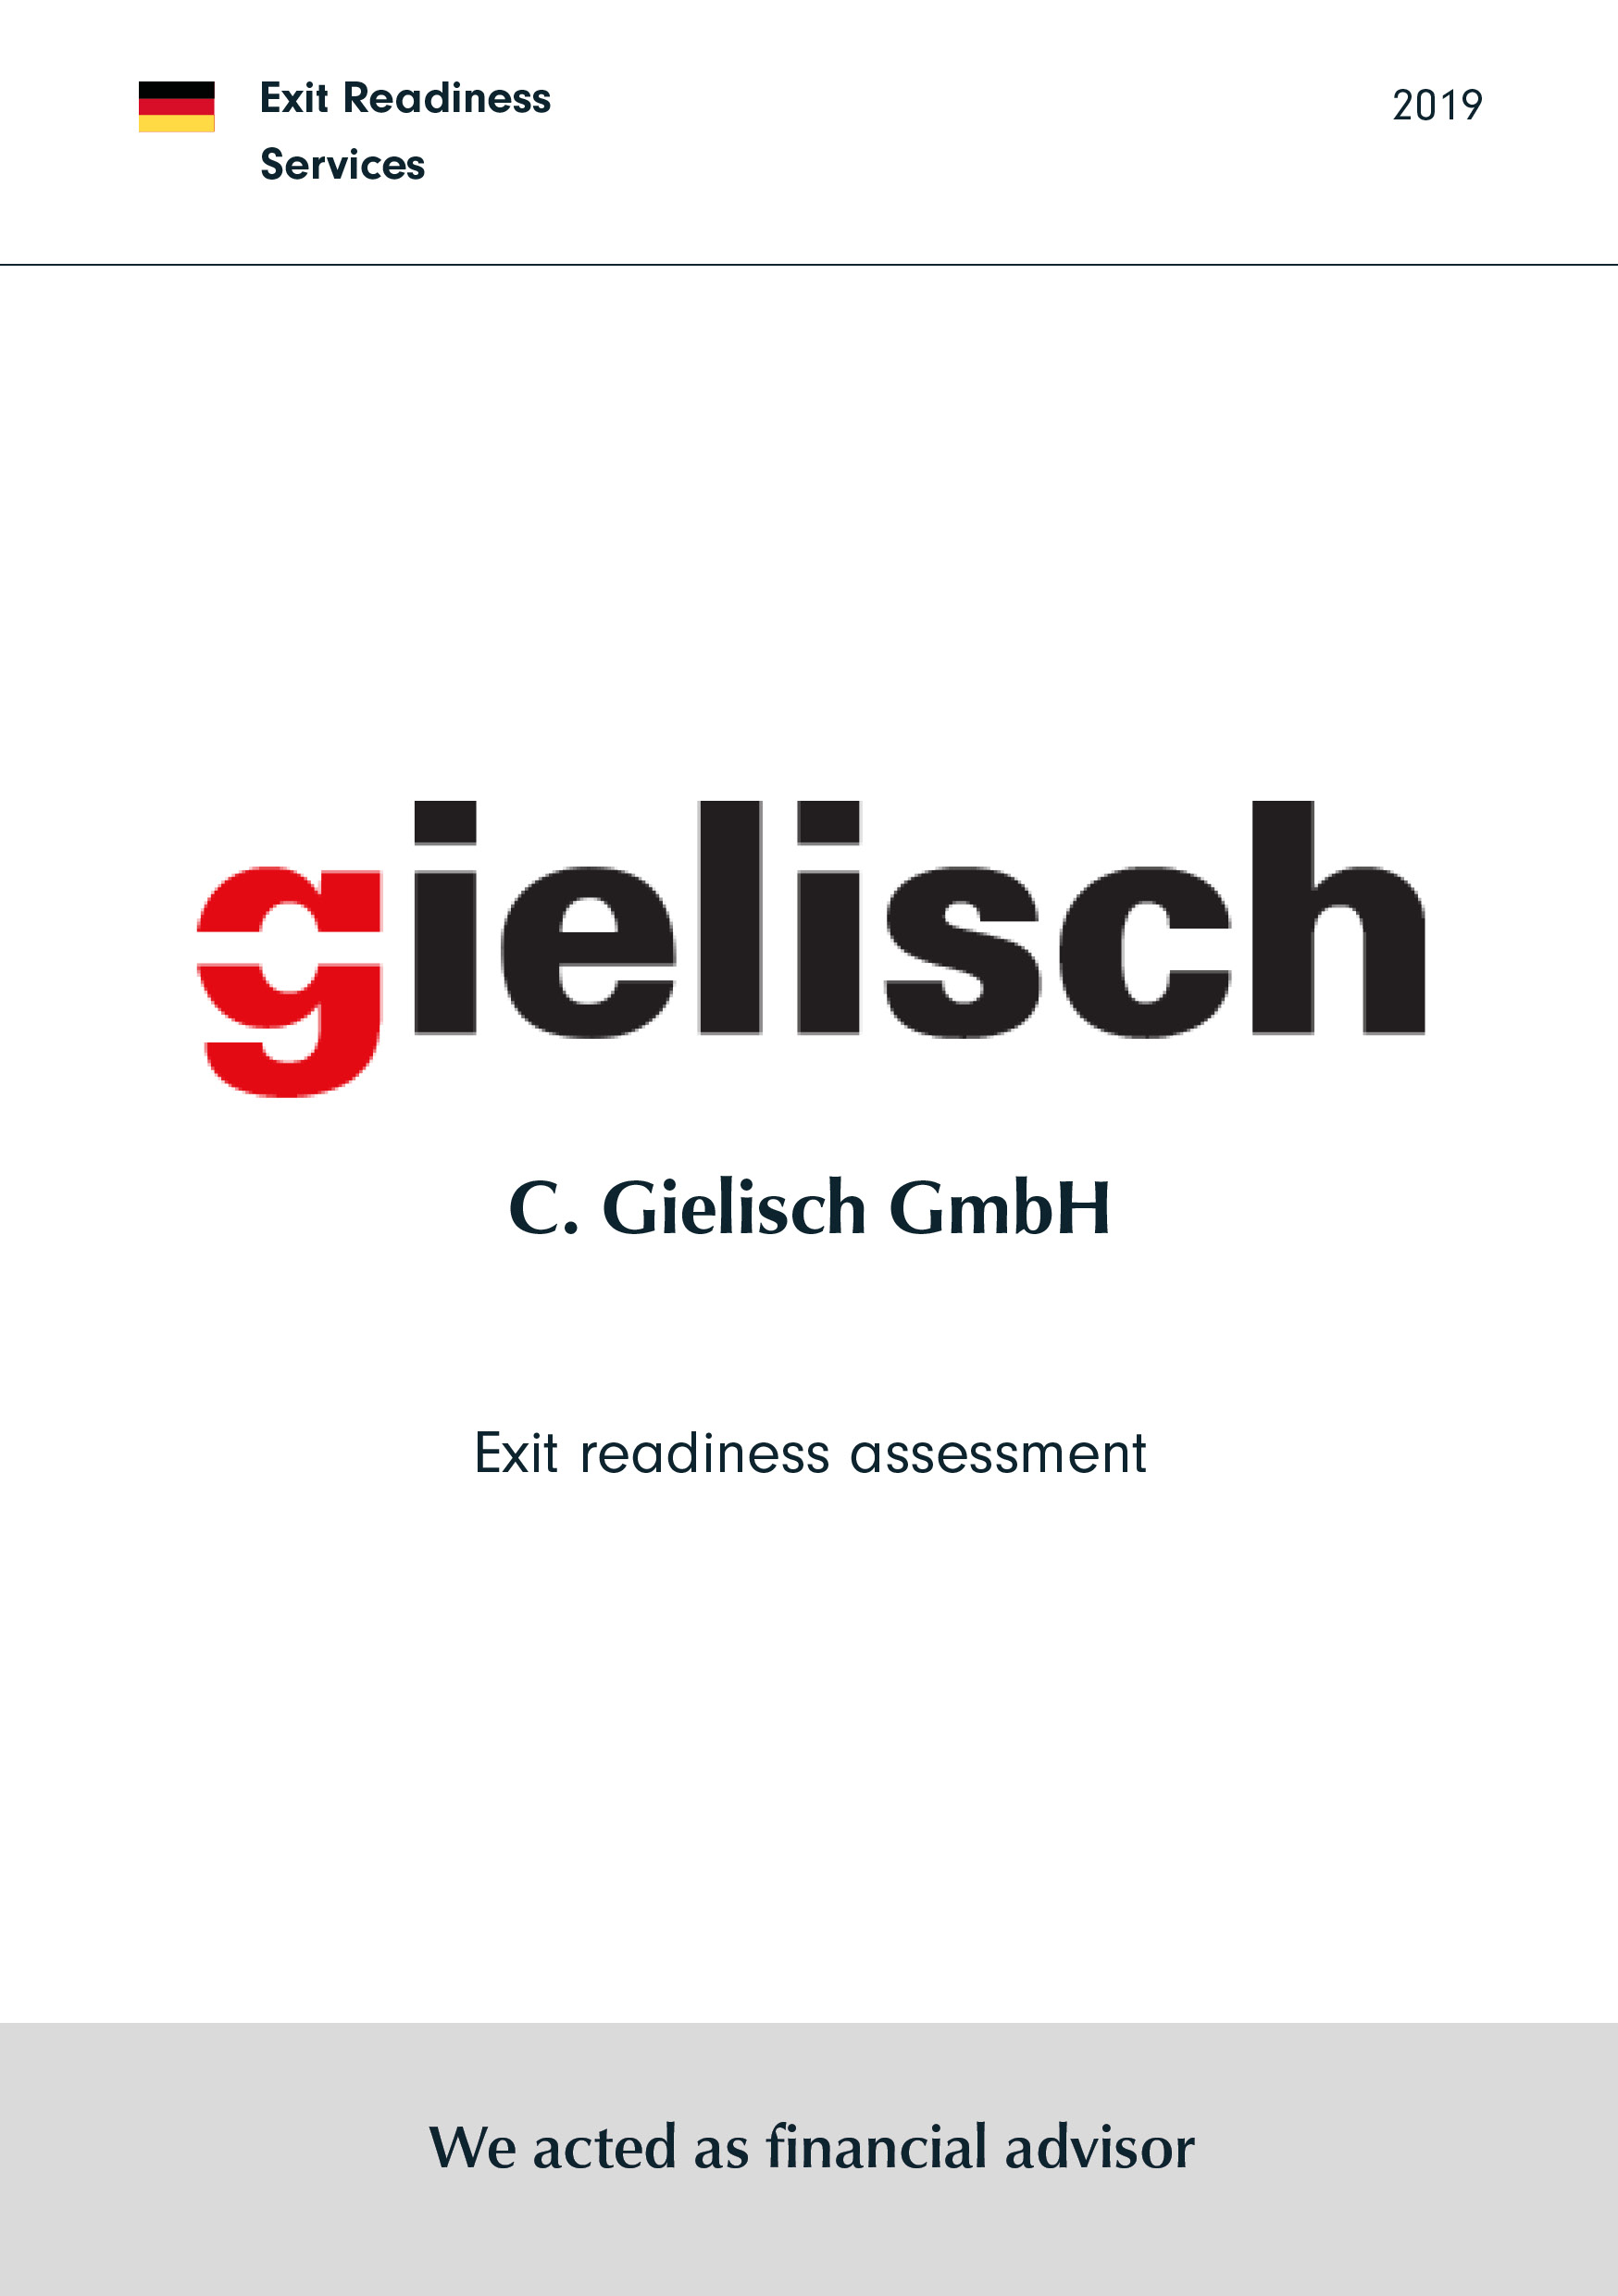 C. Gielisch | Exit readiness assessment